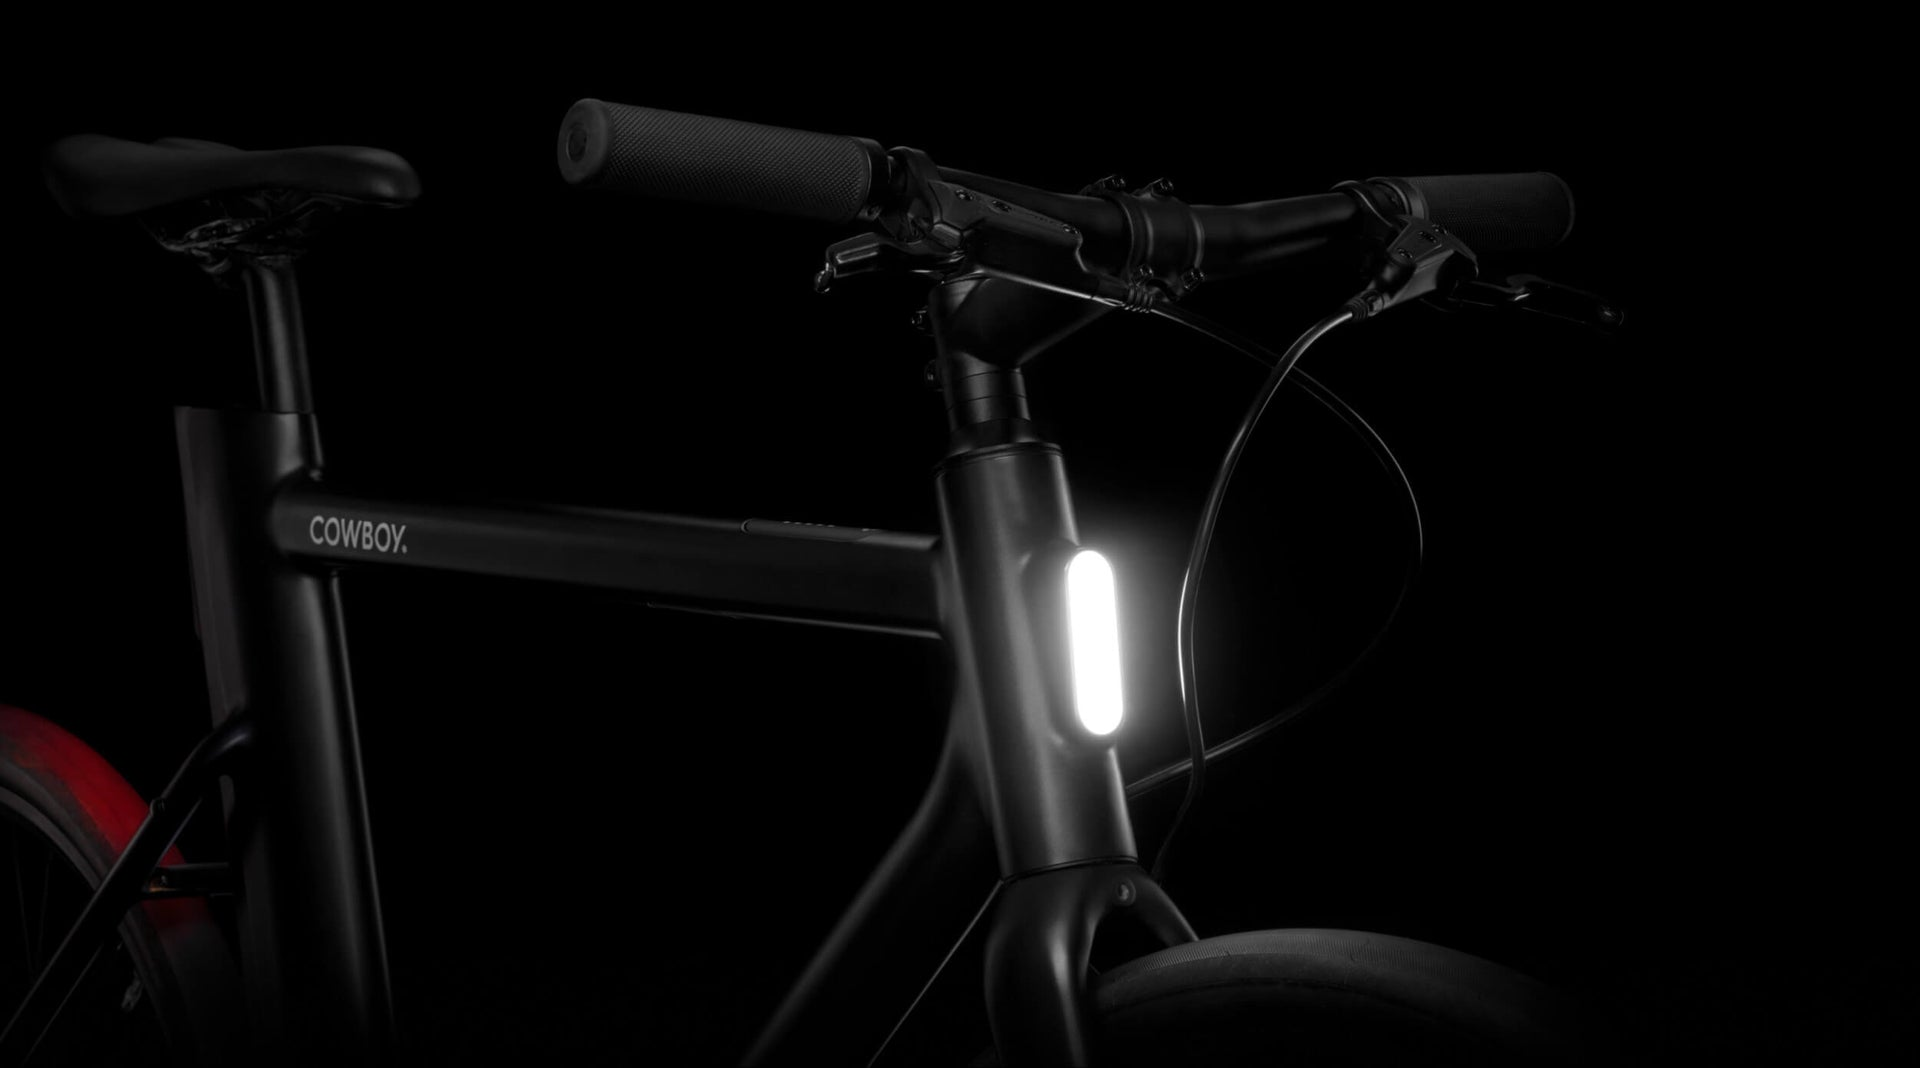 Cowboy e-bike - Integrated lights